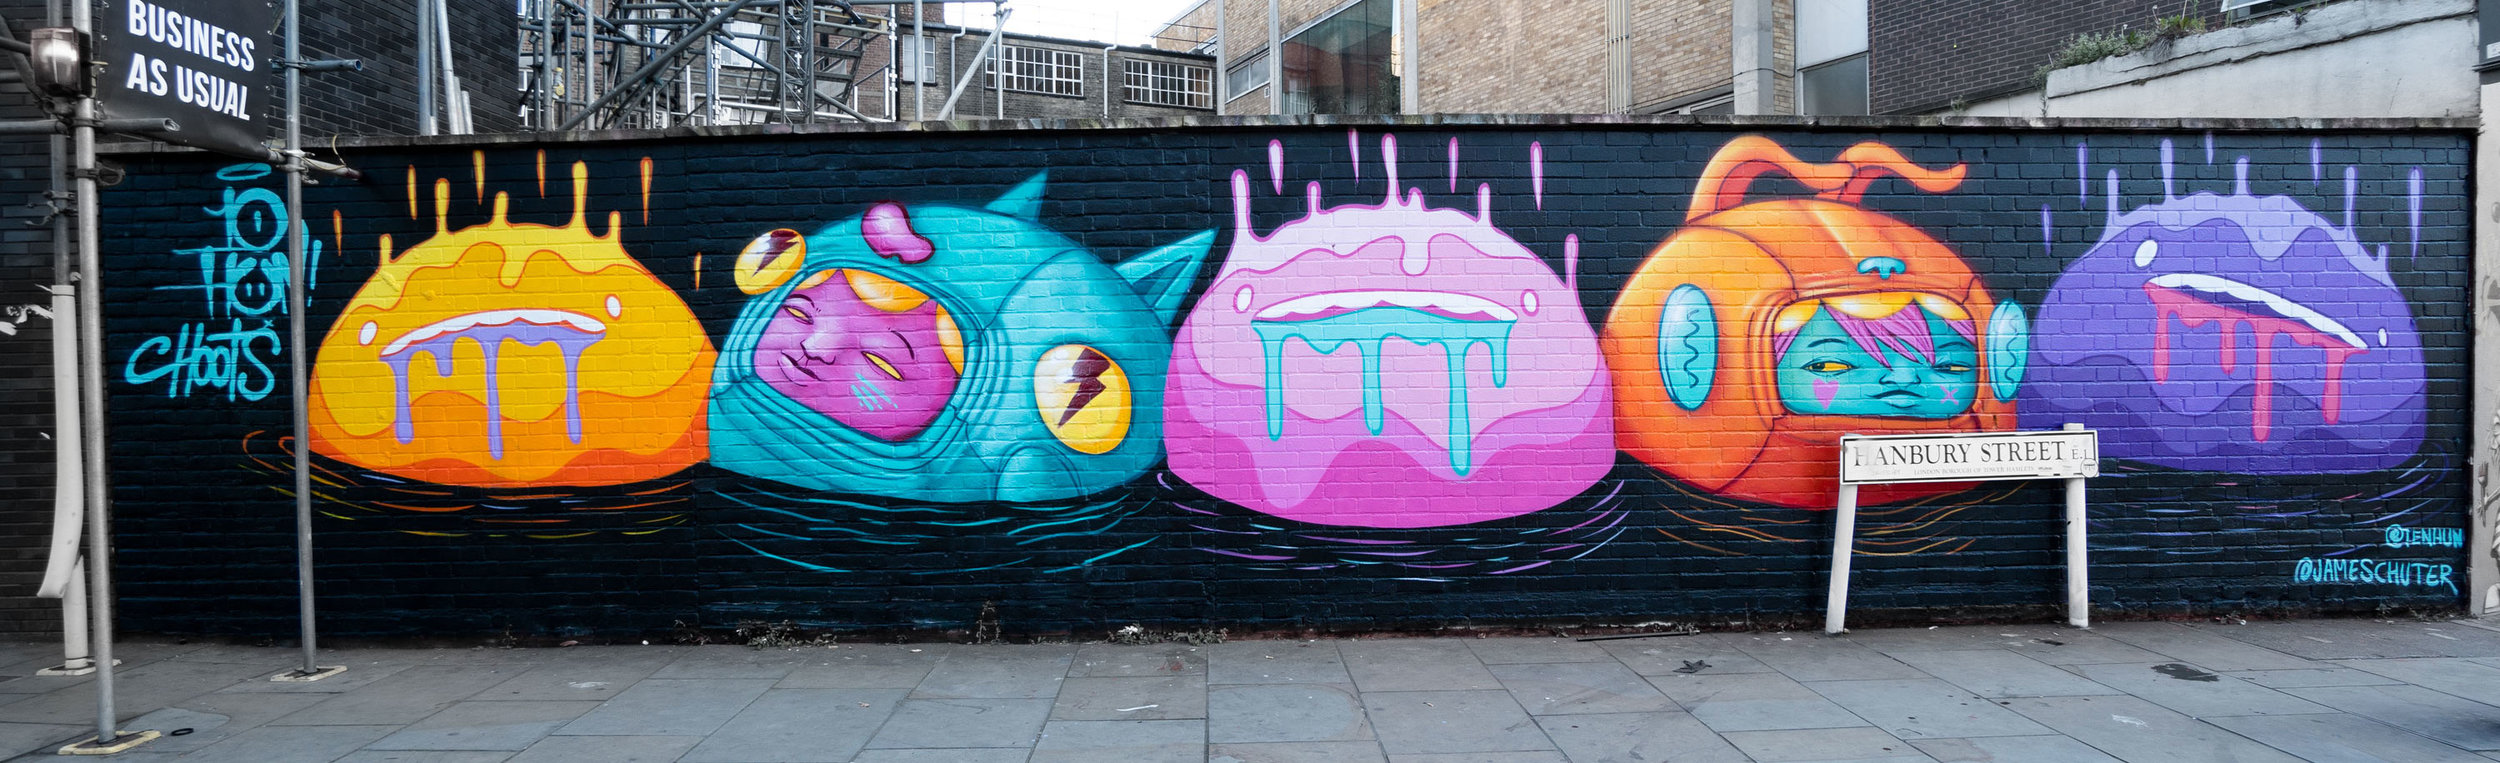 Hanbury St collab with Ten Hundred